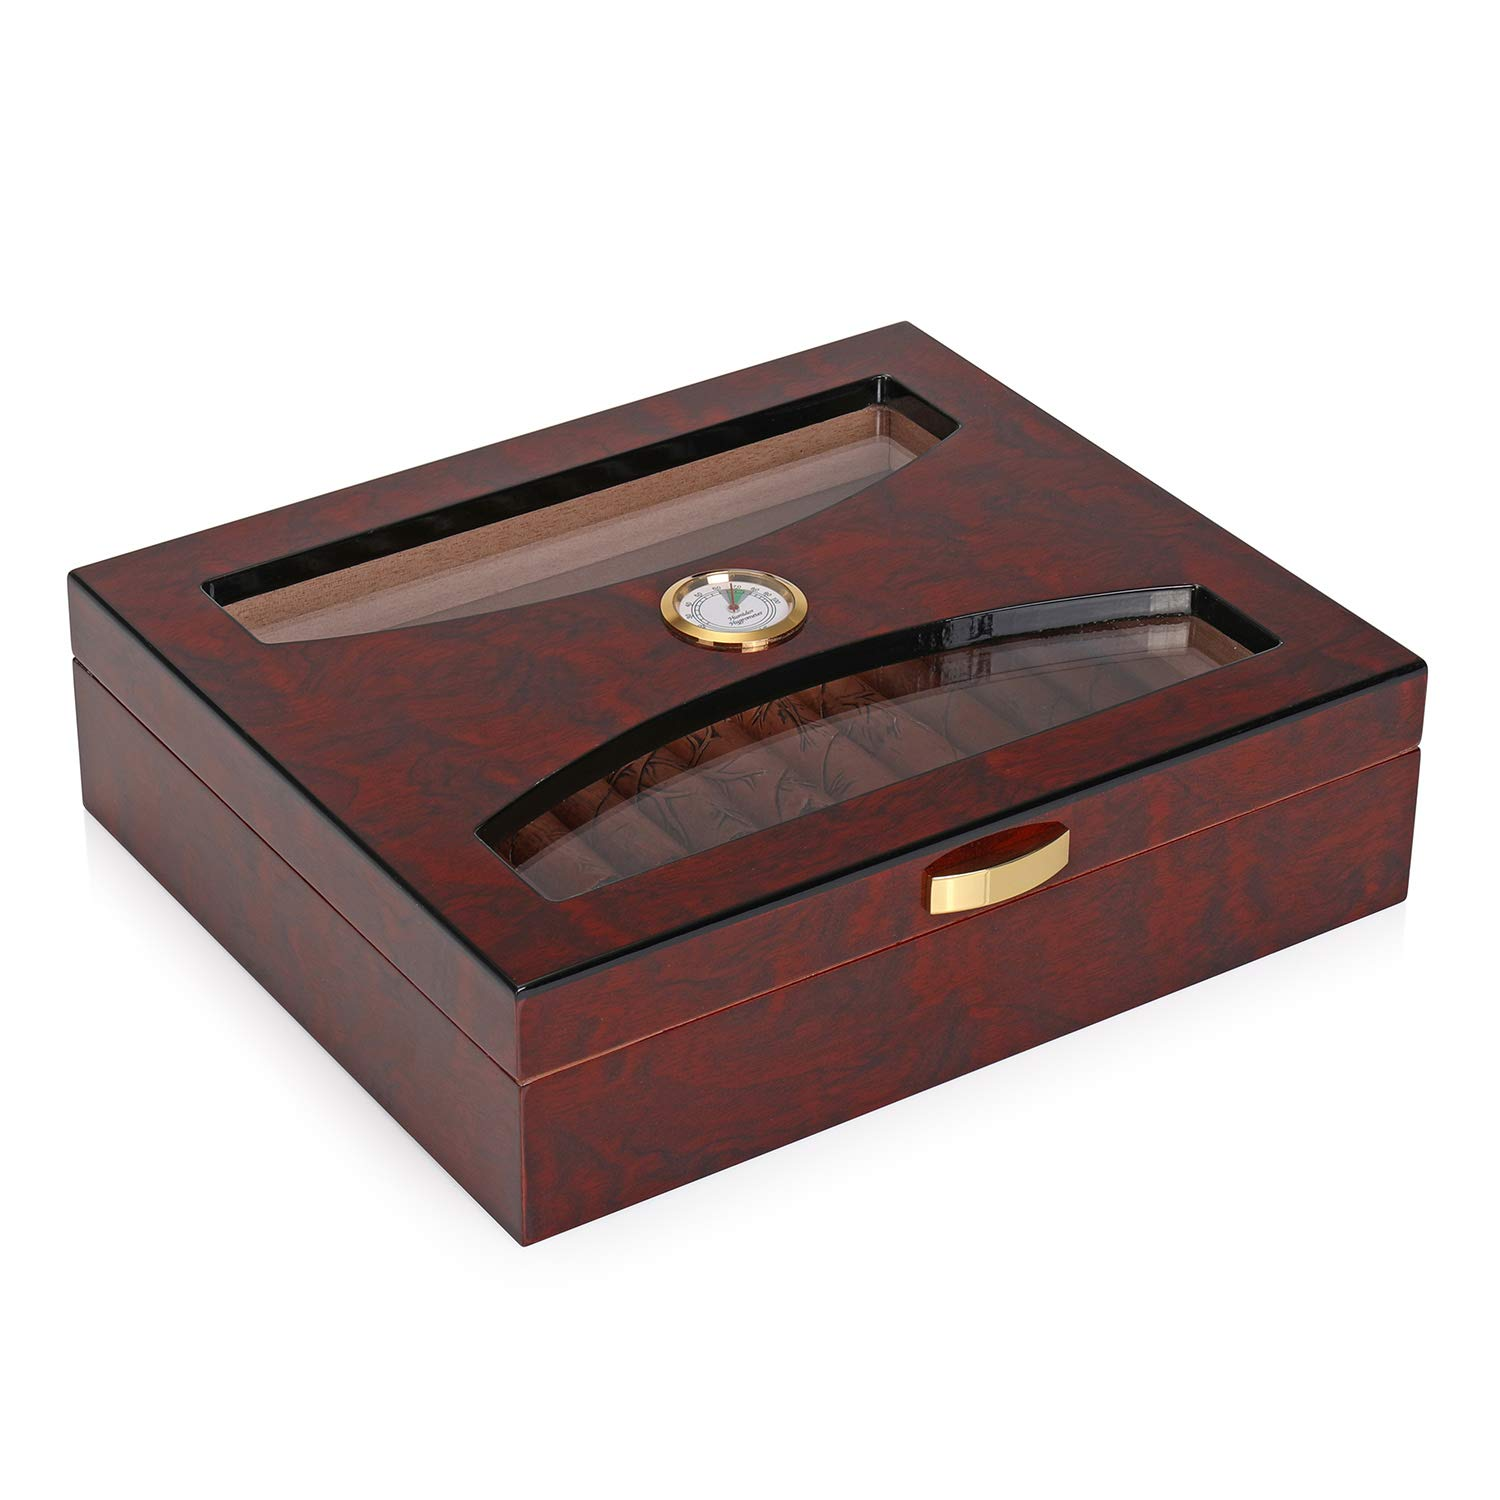 Woodronic Glasstop Cigar Humidor, Mahogany with Spanish Cedar Wood Lined for 25 Cigars, Perfect Desktop Display Cigar Box Set with Hygrometer and Humidifier, A-5036 by Woodronic